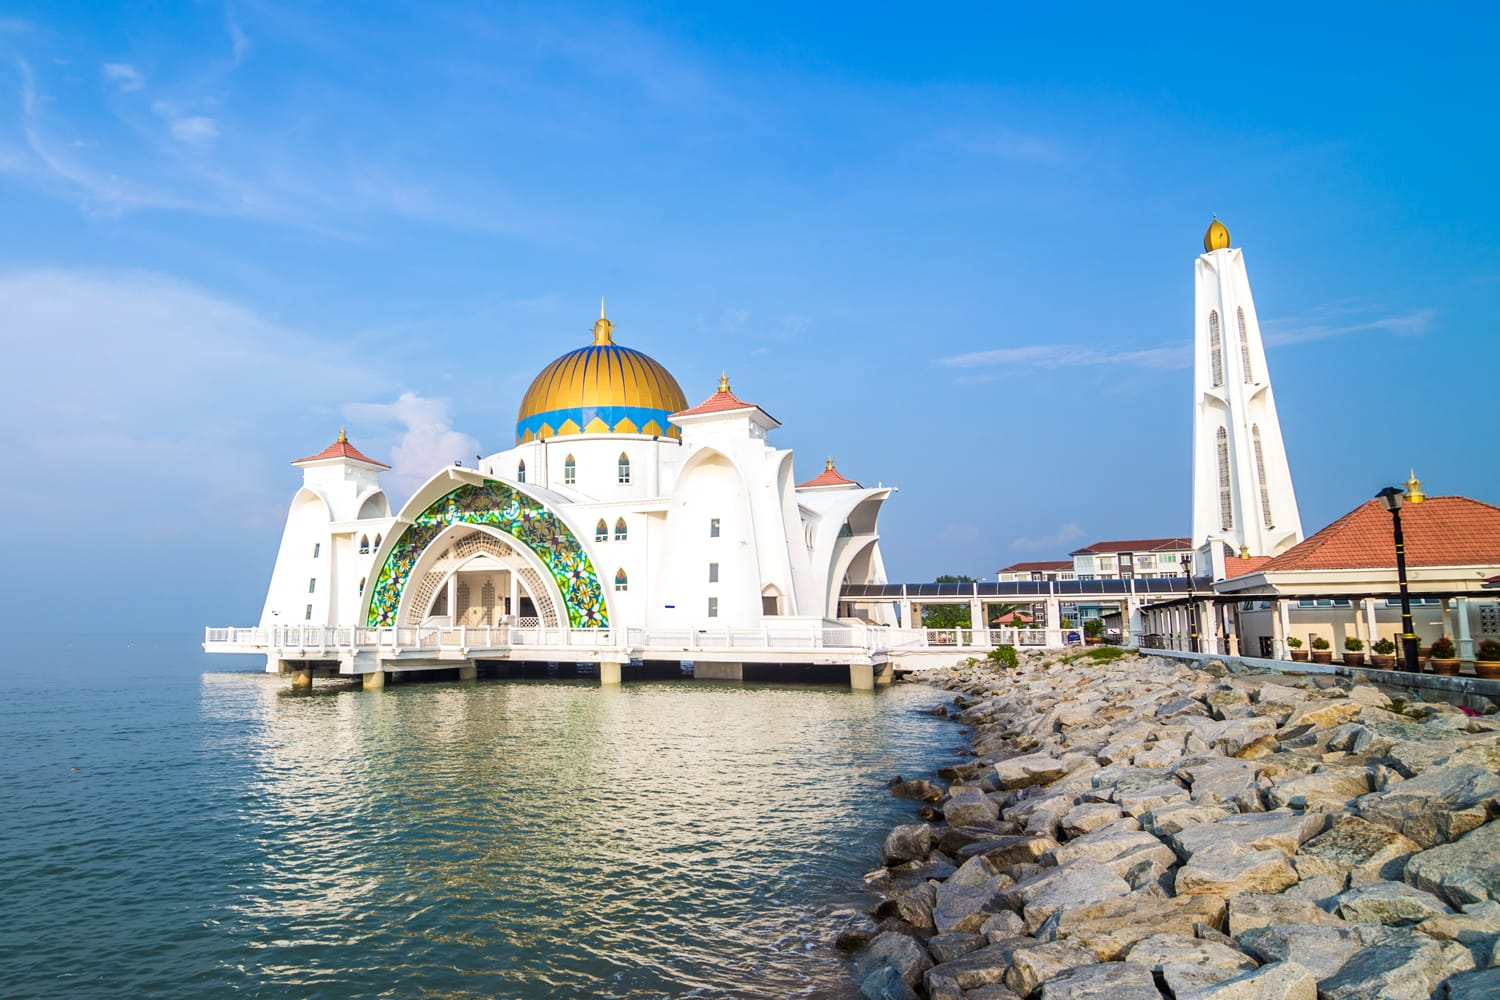 Malacca Straits Mosque ( Masjid Selat Melaka) located on the man-made Malacca Island near Malacca city, Malaysia